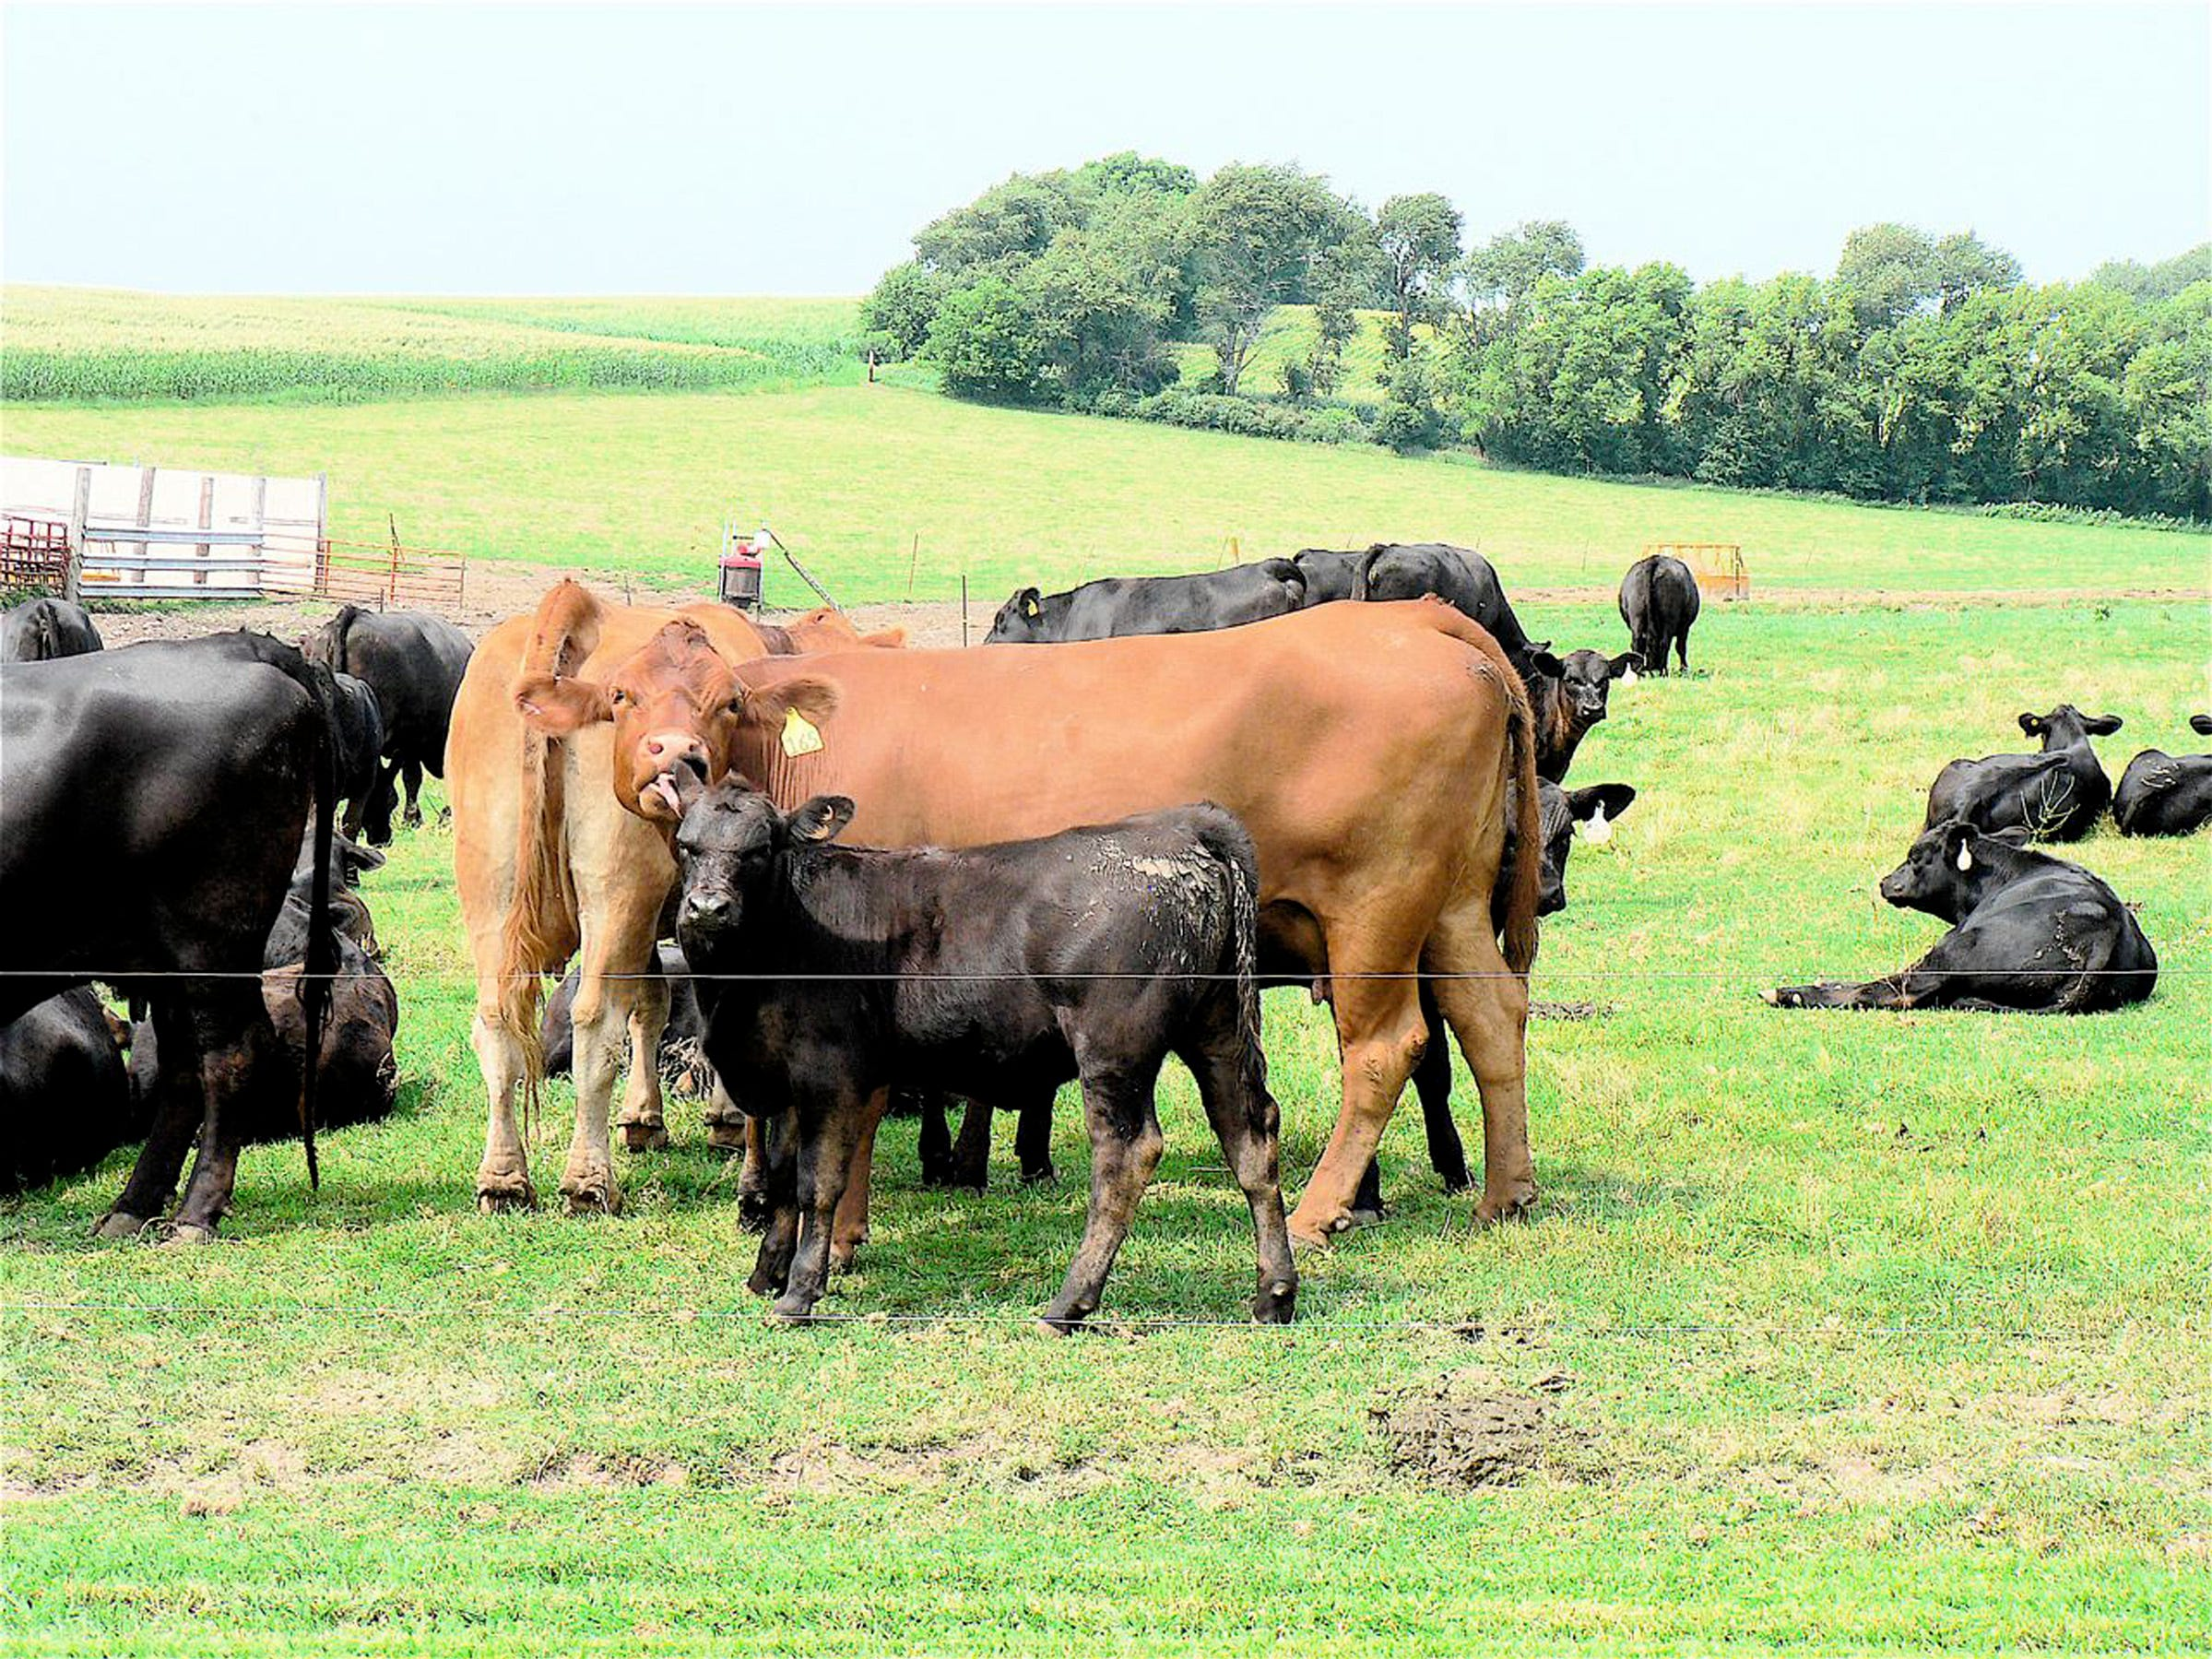 A Gelbveih cow and her black calf.